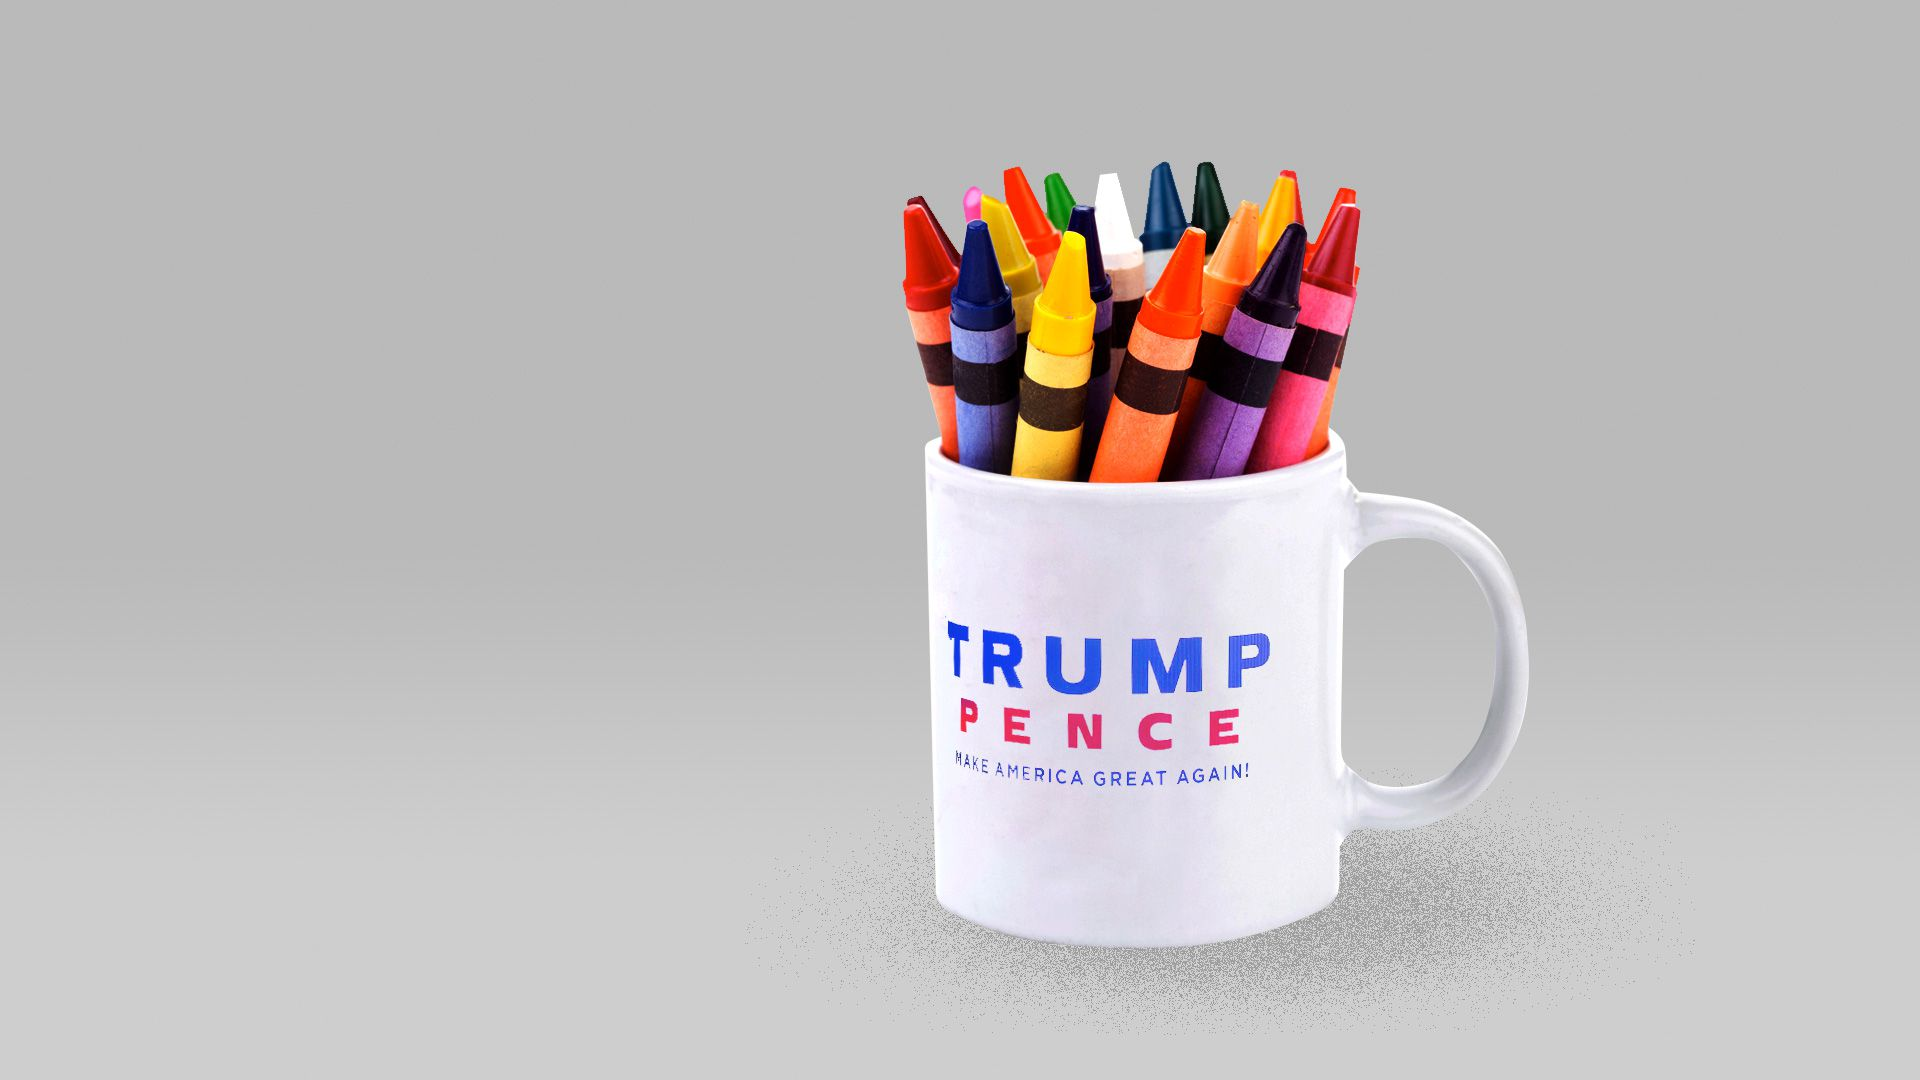 A coffee mug with the Trump/Pence logo holding crayons